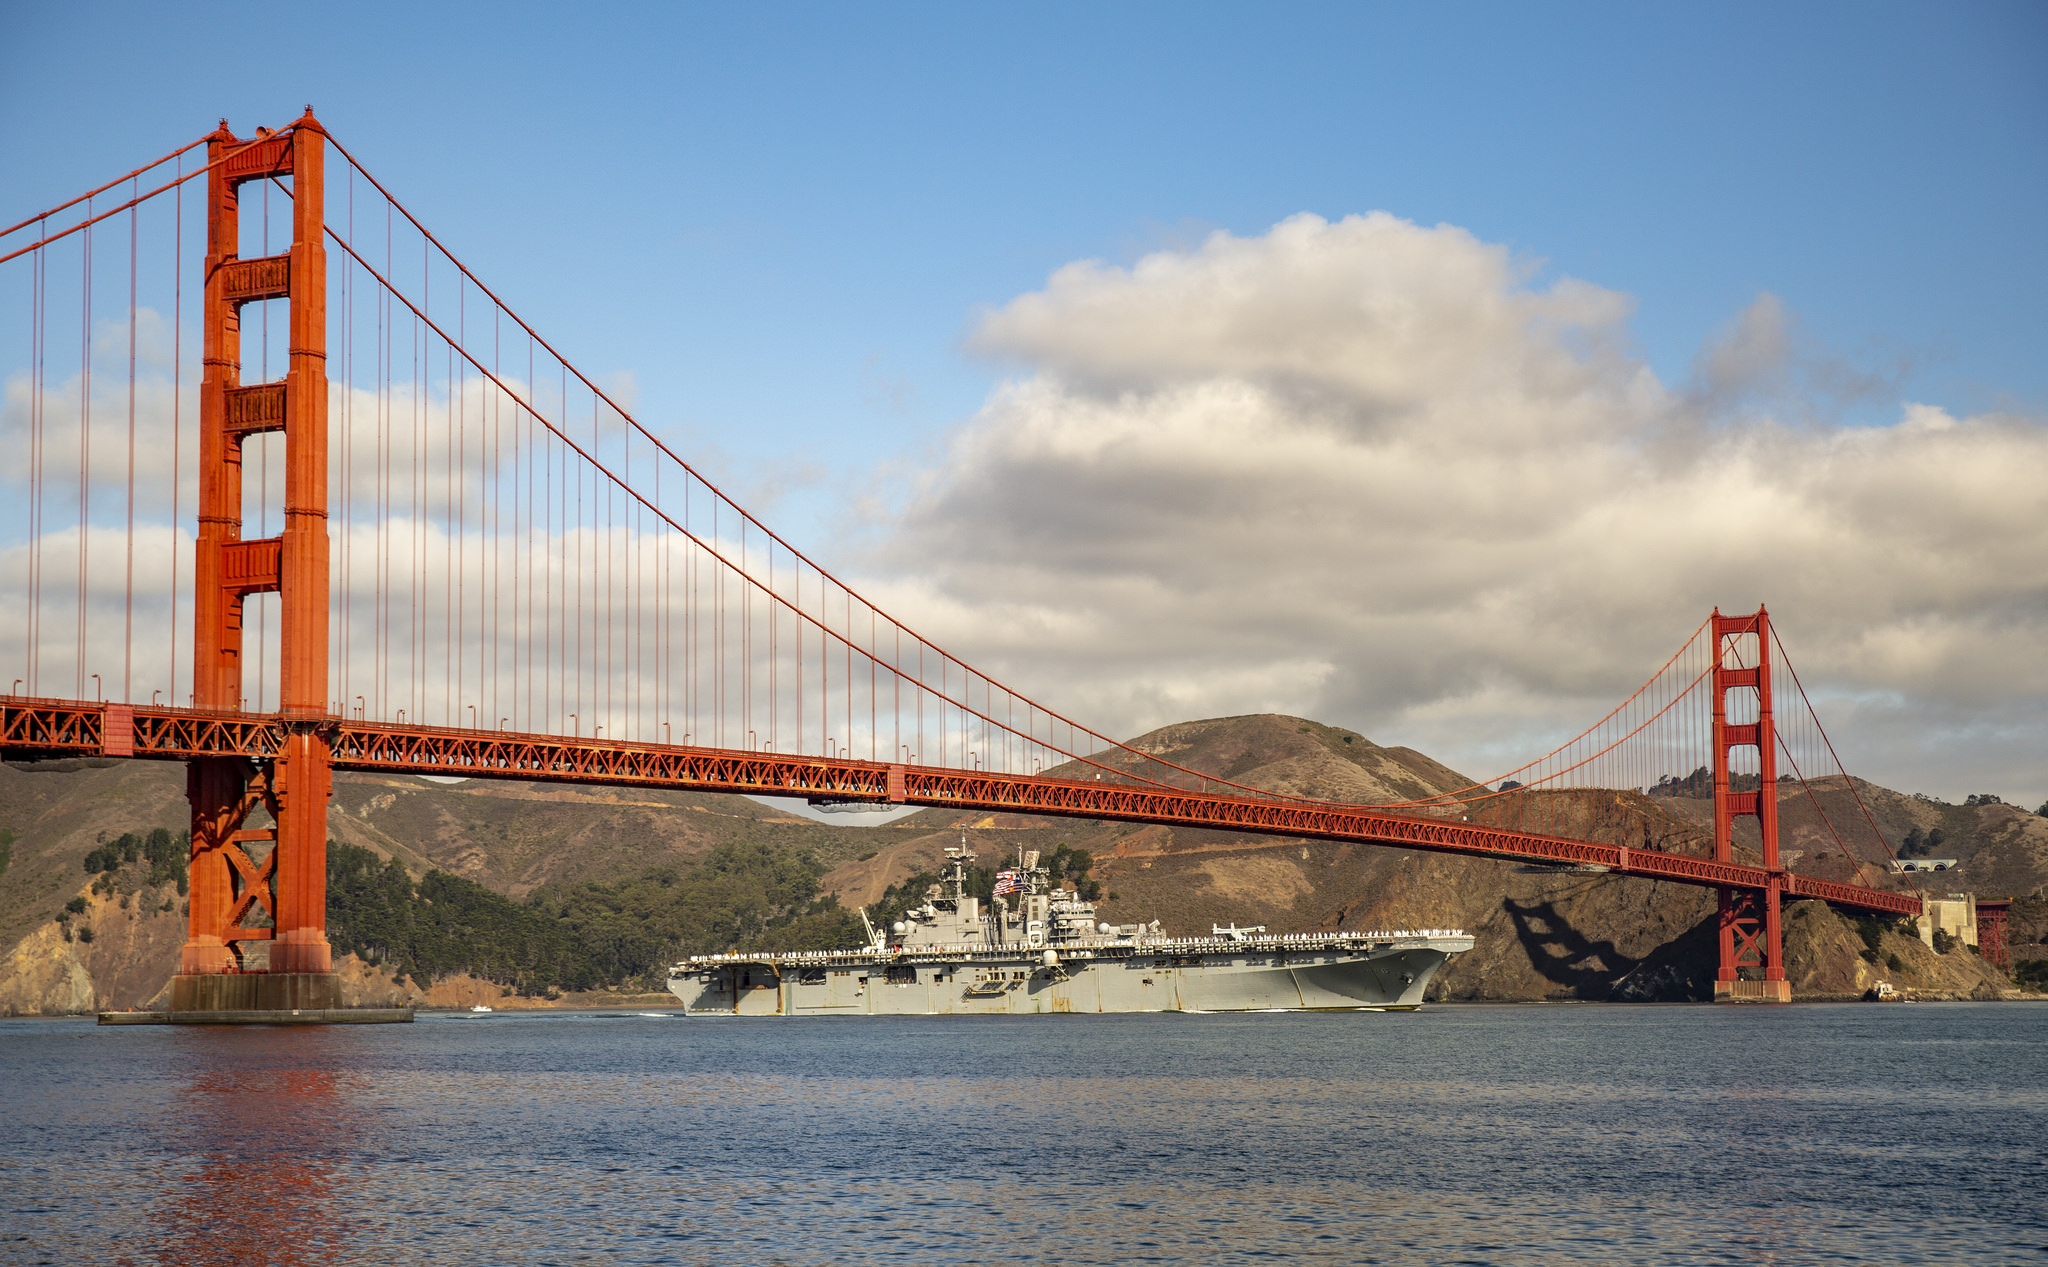 Marines and sailors aboard the amphibious assault ship USS Bonhomme Richard (LHD 6) pass under the Golden Gate Bridge to participate in San Francisco Fleet Week 2018 on Sept. 30, 2018. (Cpl. Jacob A. Farbo/Marine Corps)